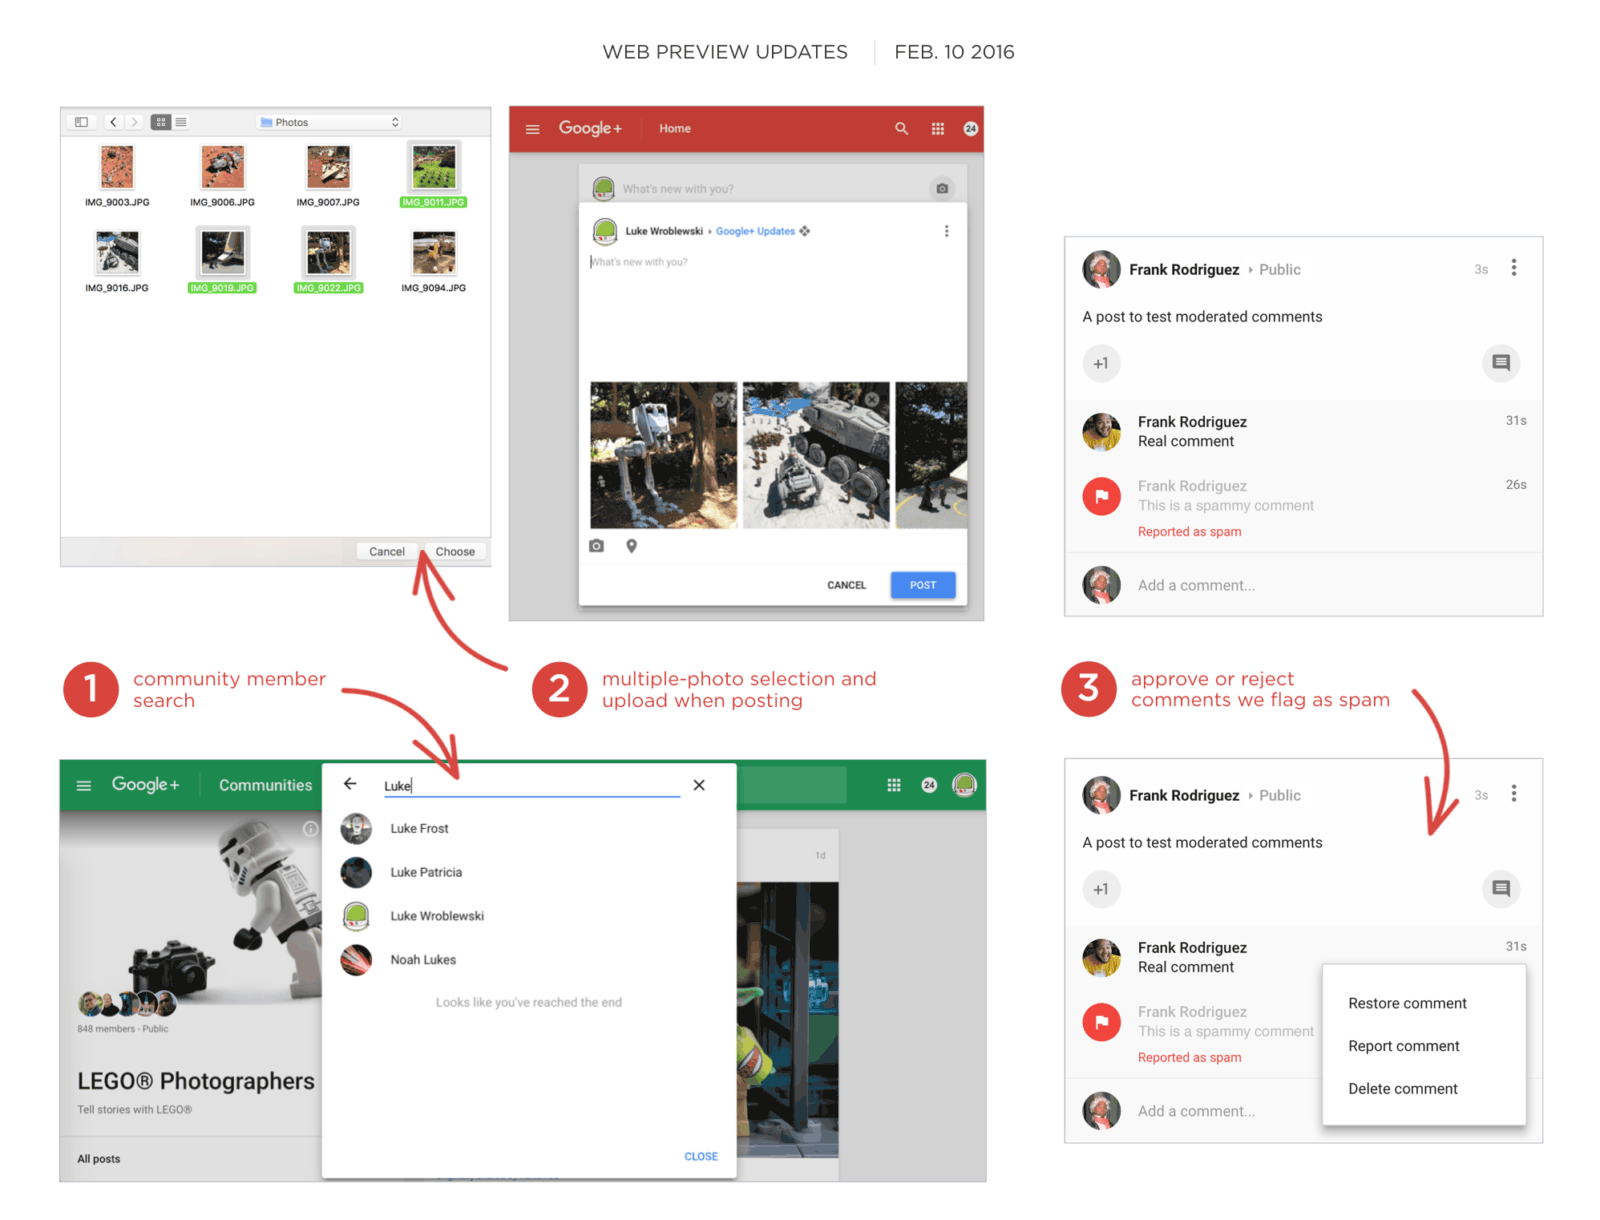 Google+ web preview